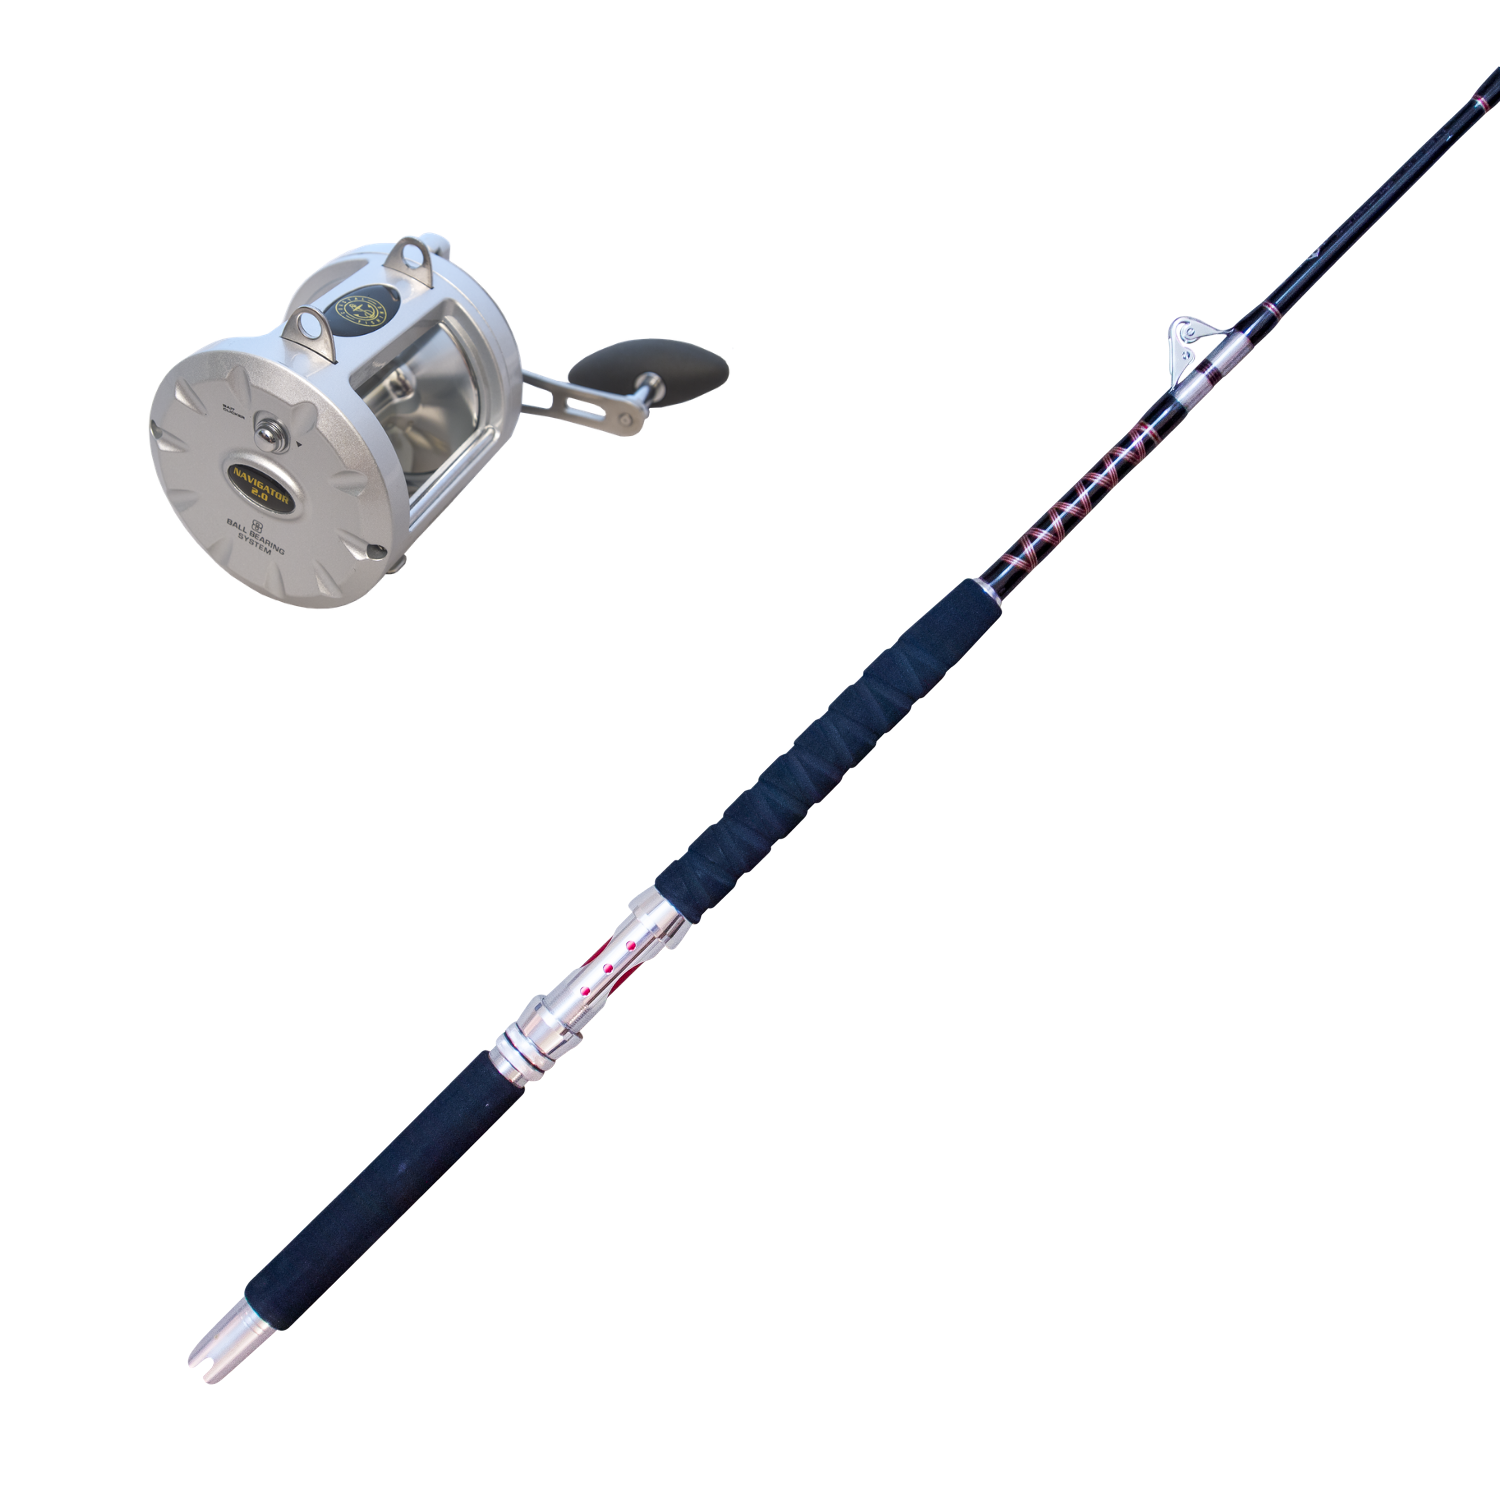 100  120lb Hollow Roller Rod  Standup & Trolling   Coastal Fishing